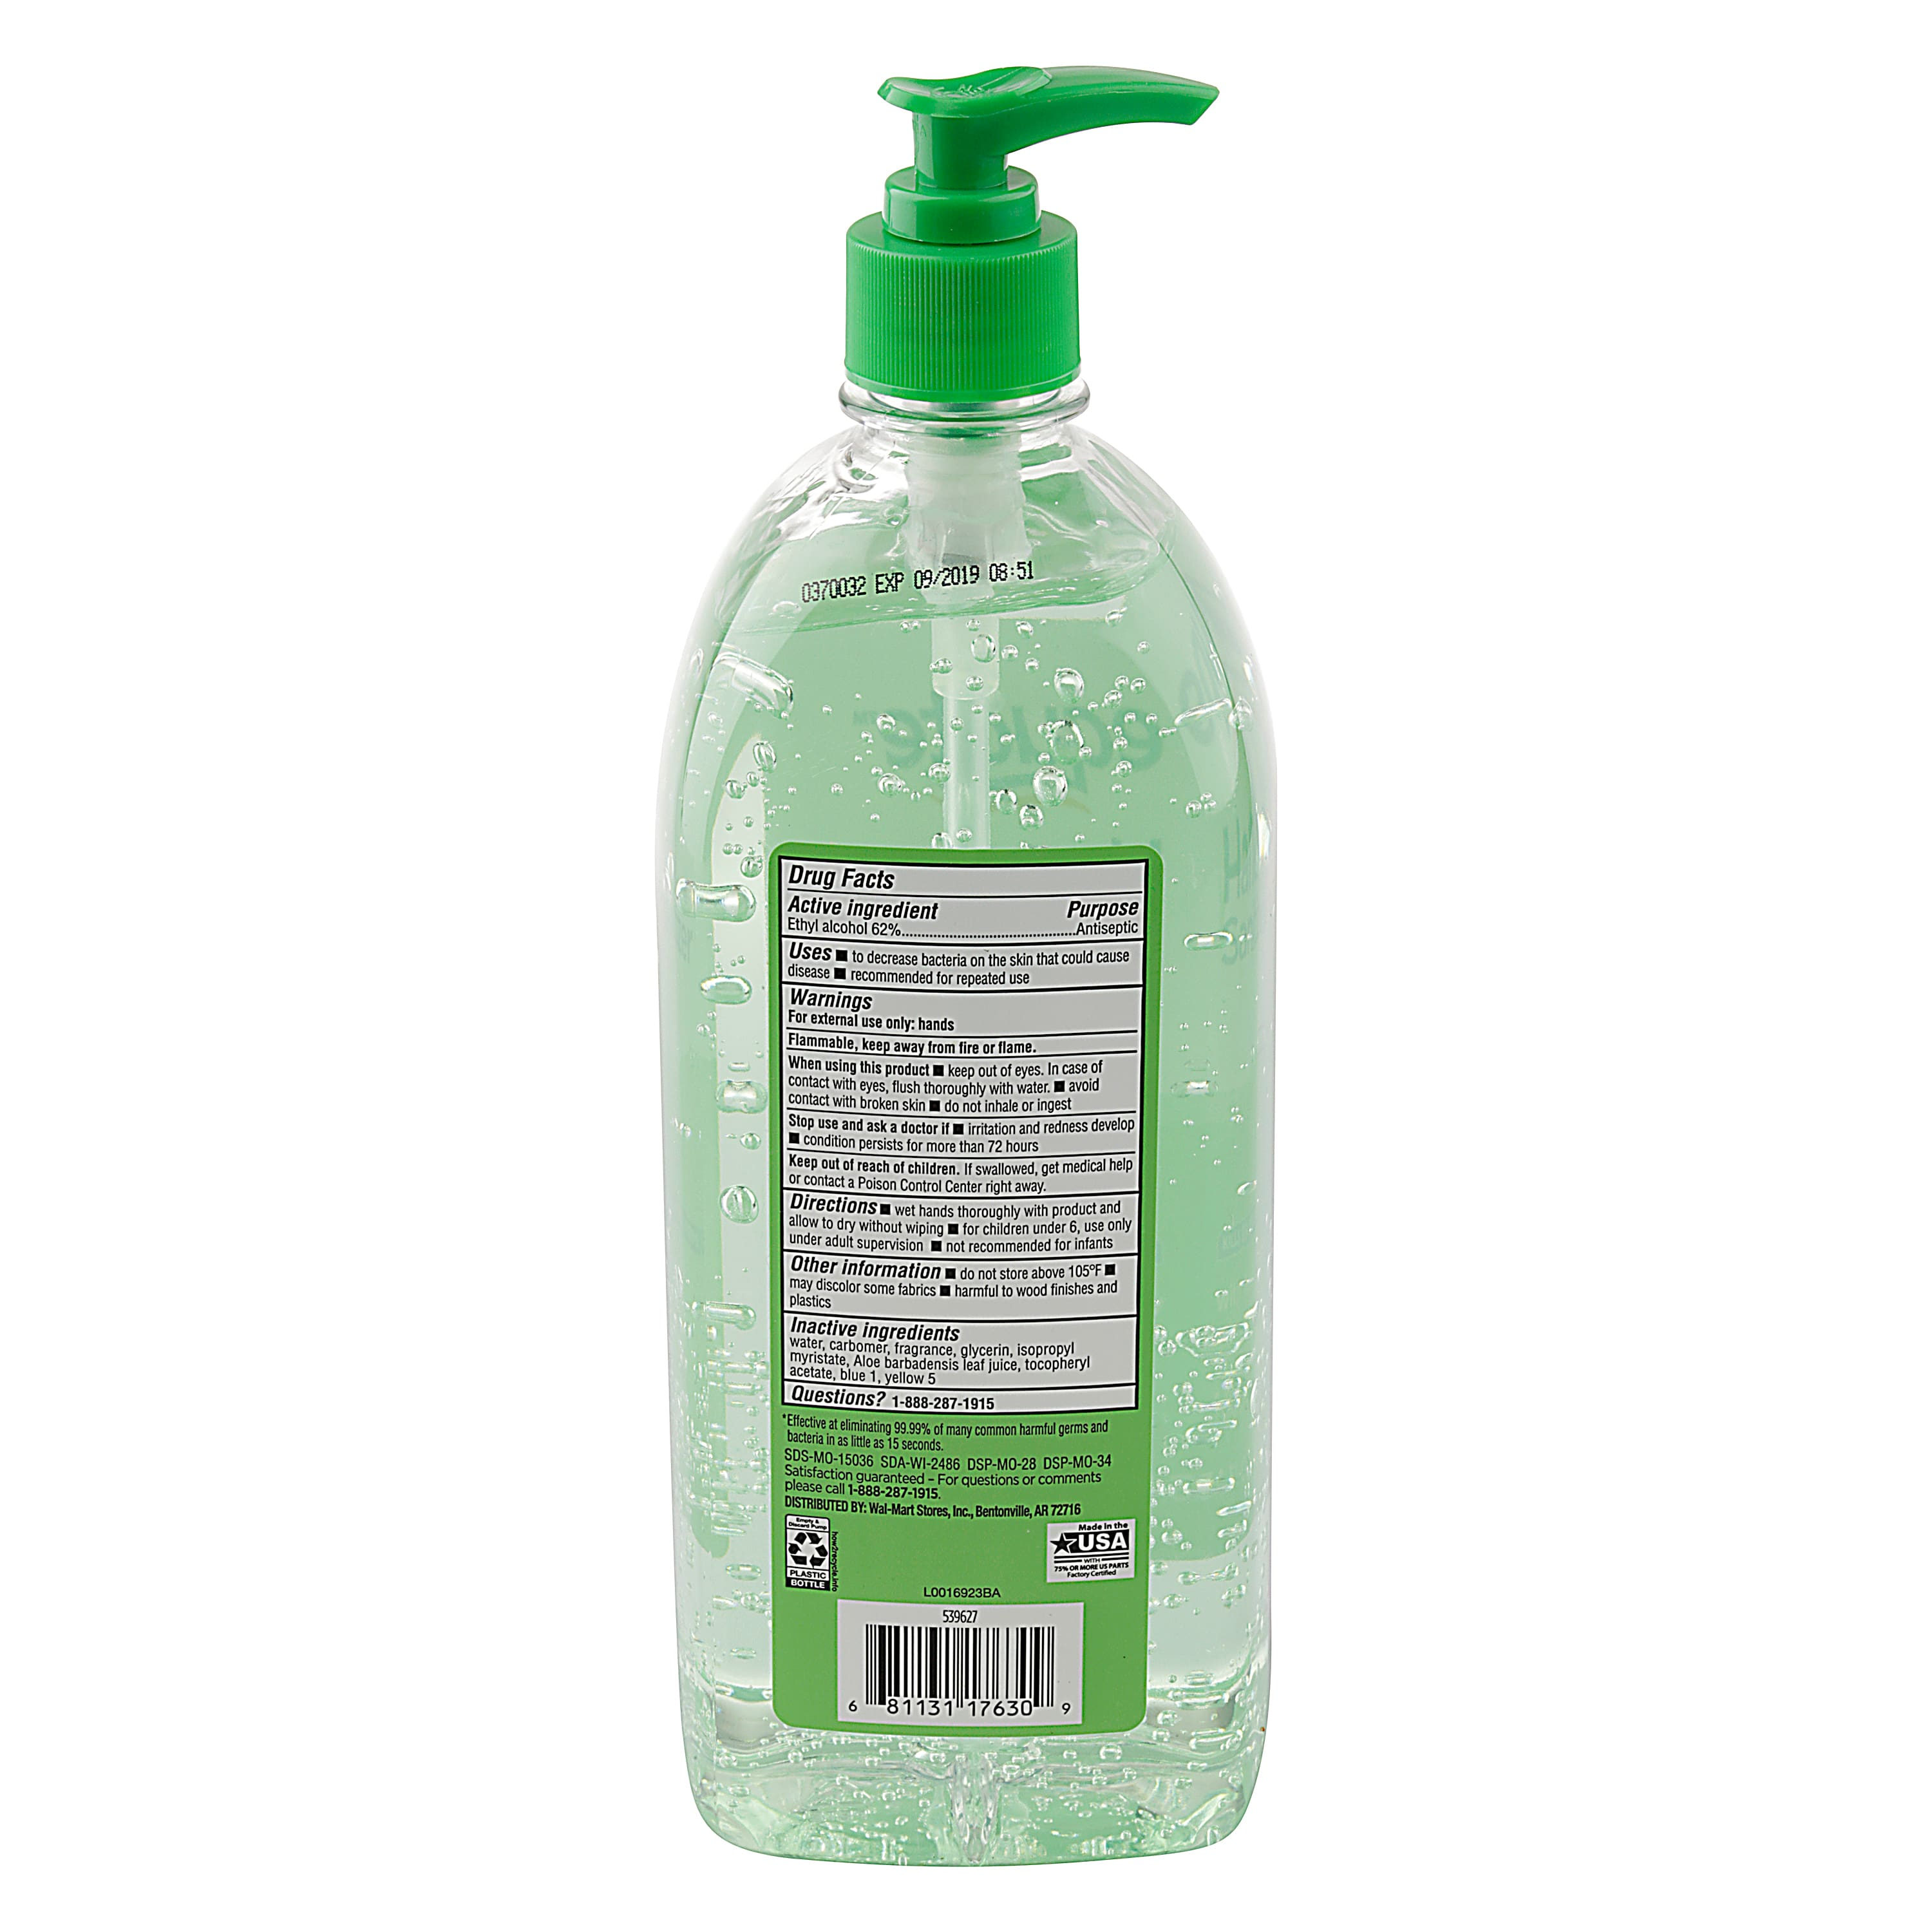 Hand Sanitizer - Walmart - 2 pack Equate Hand Sanitizer with Aloe, 34 Oz - Stock on and off through out the day